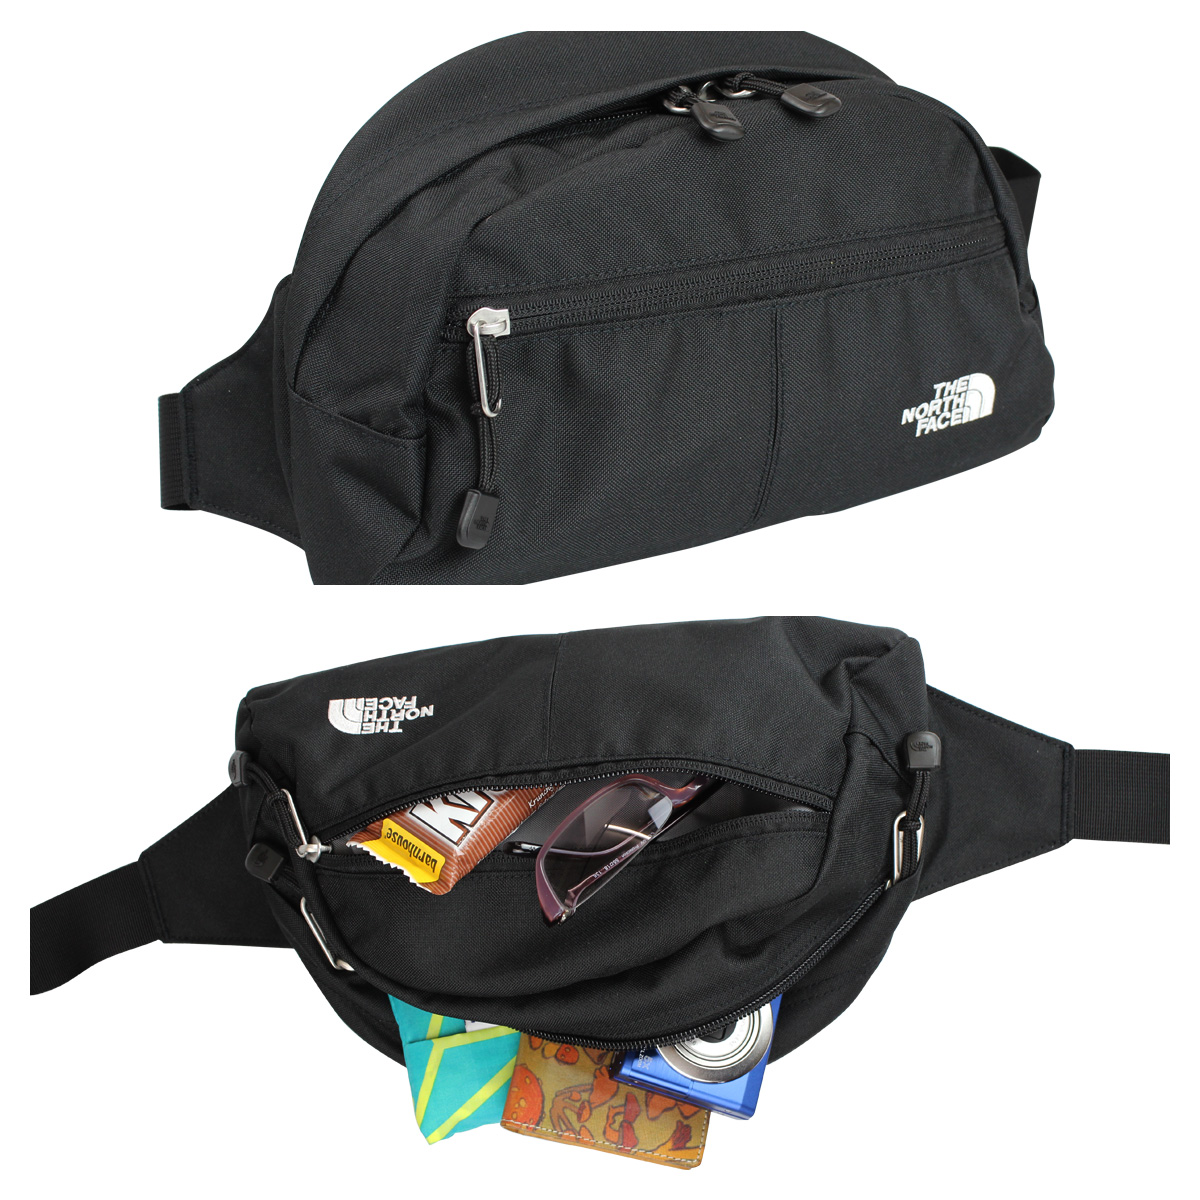 692237254 THE NORTH FACE the north face bags waist bag hip bag ROO men's ladies